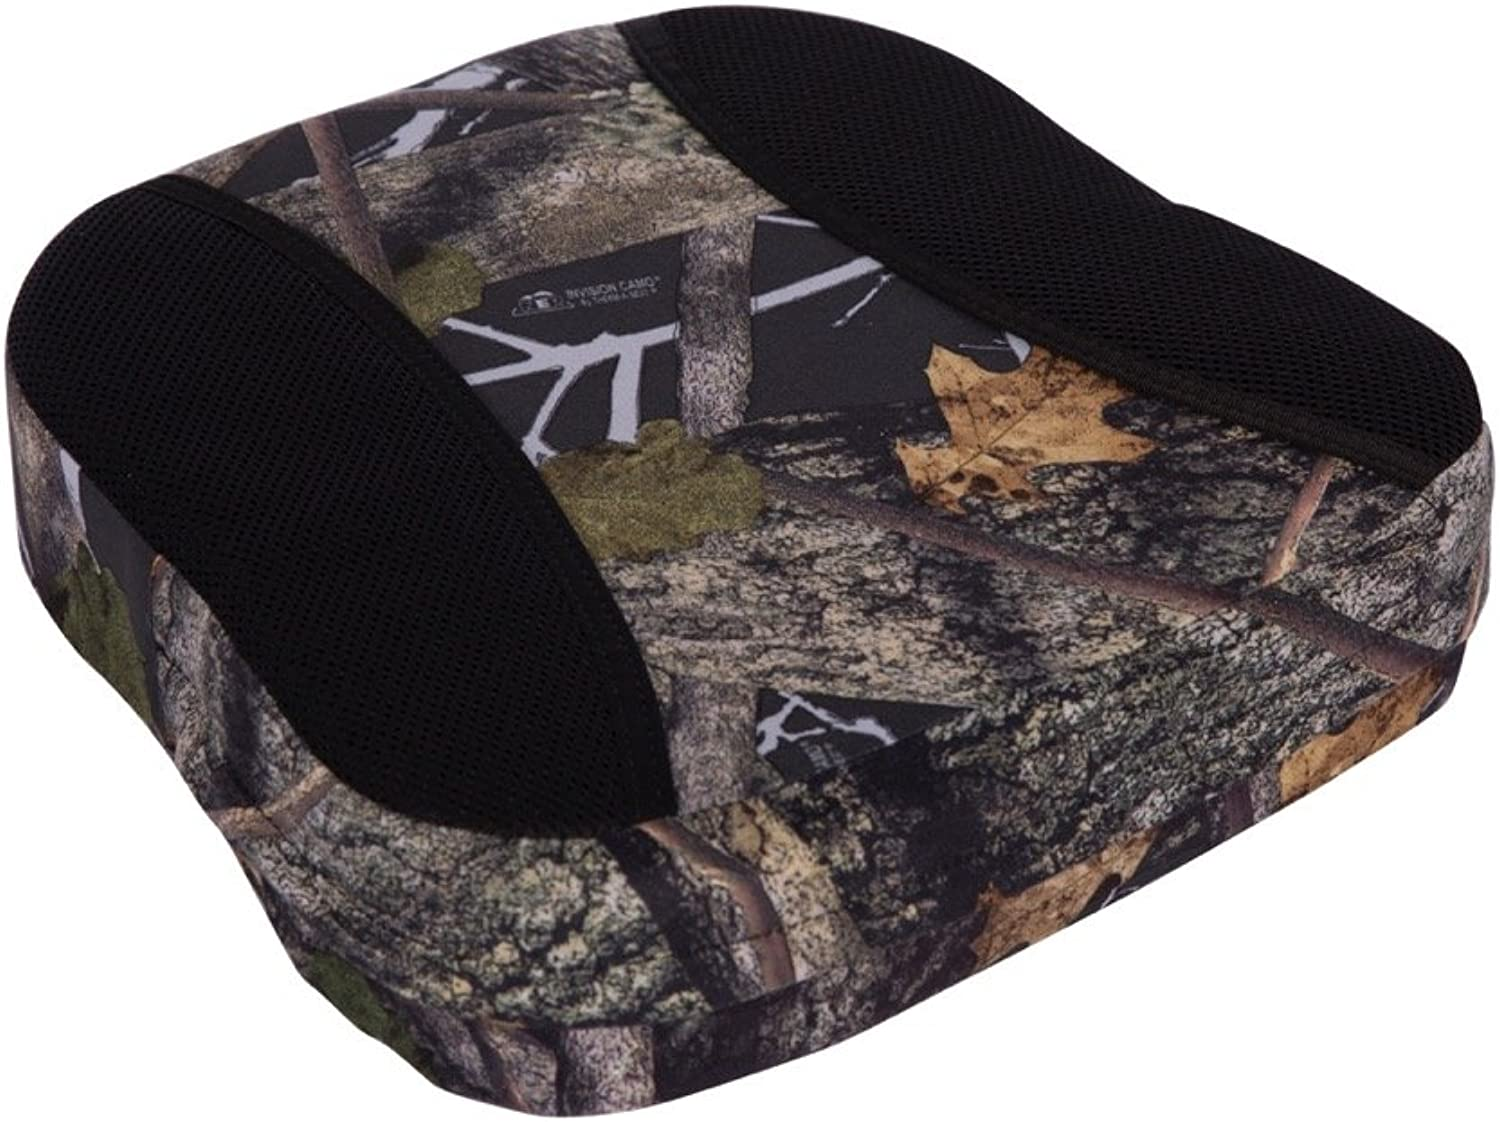 NEP Outdoors ThermaSeat Infusion 3Layer Premium Hunting Cushion